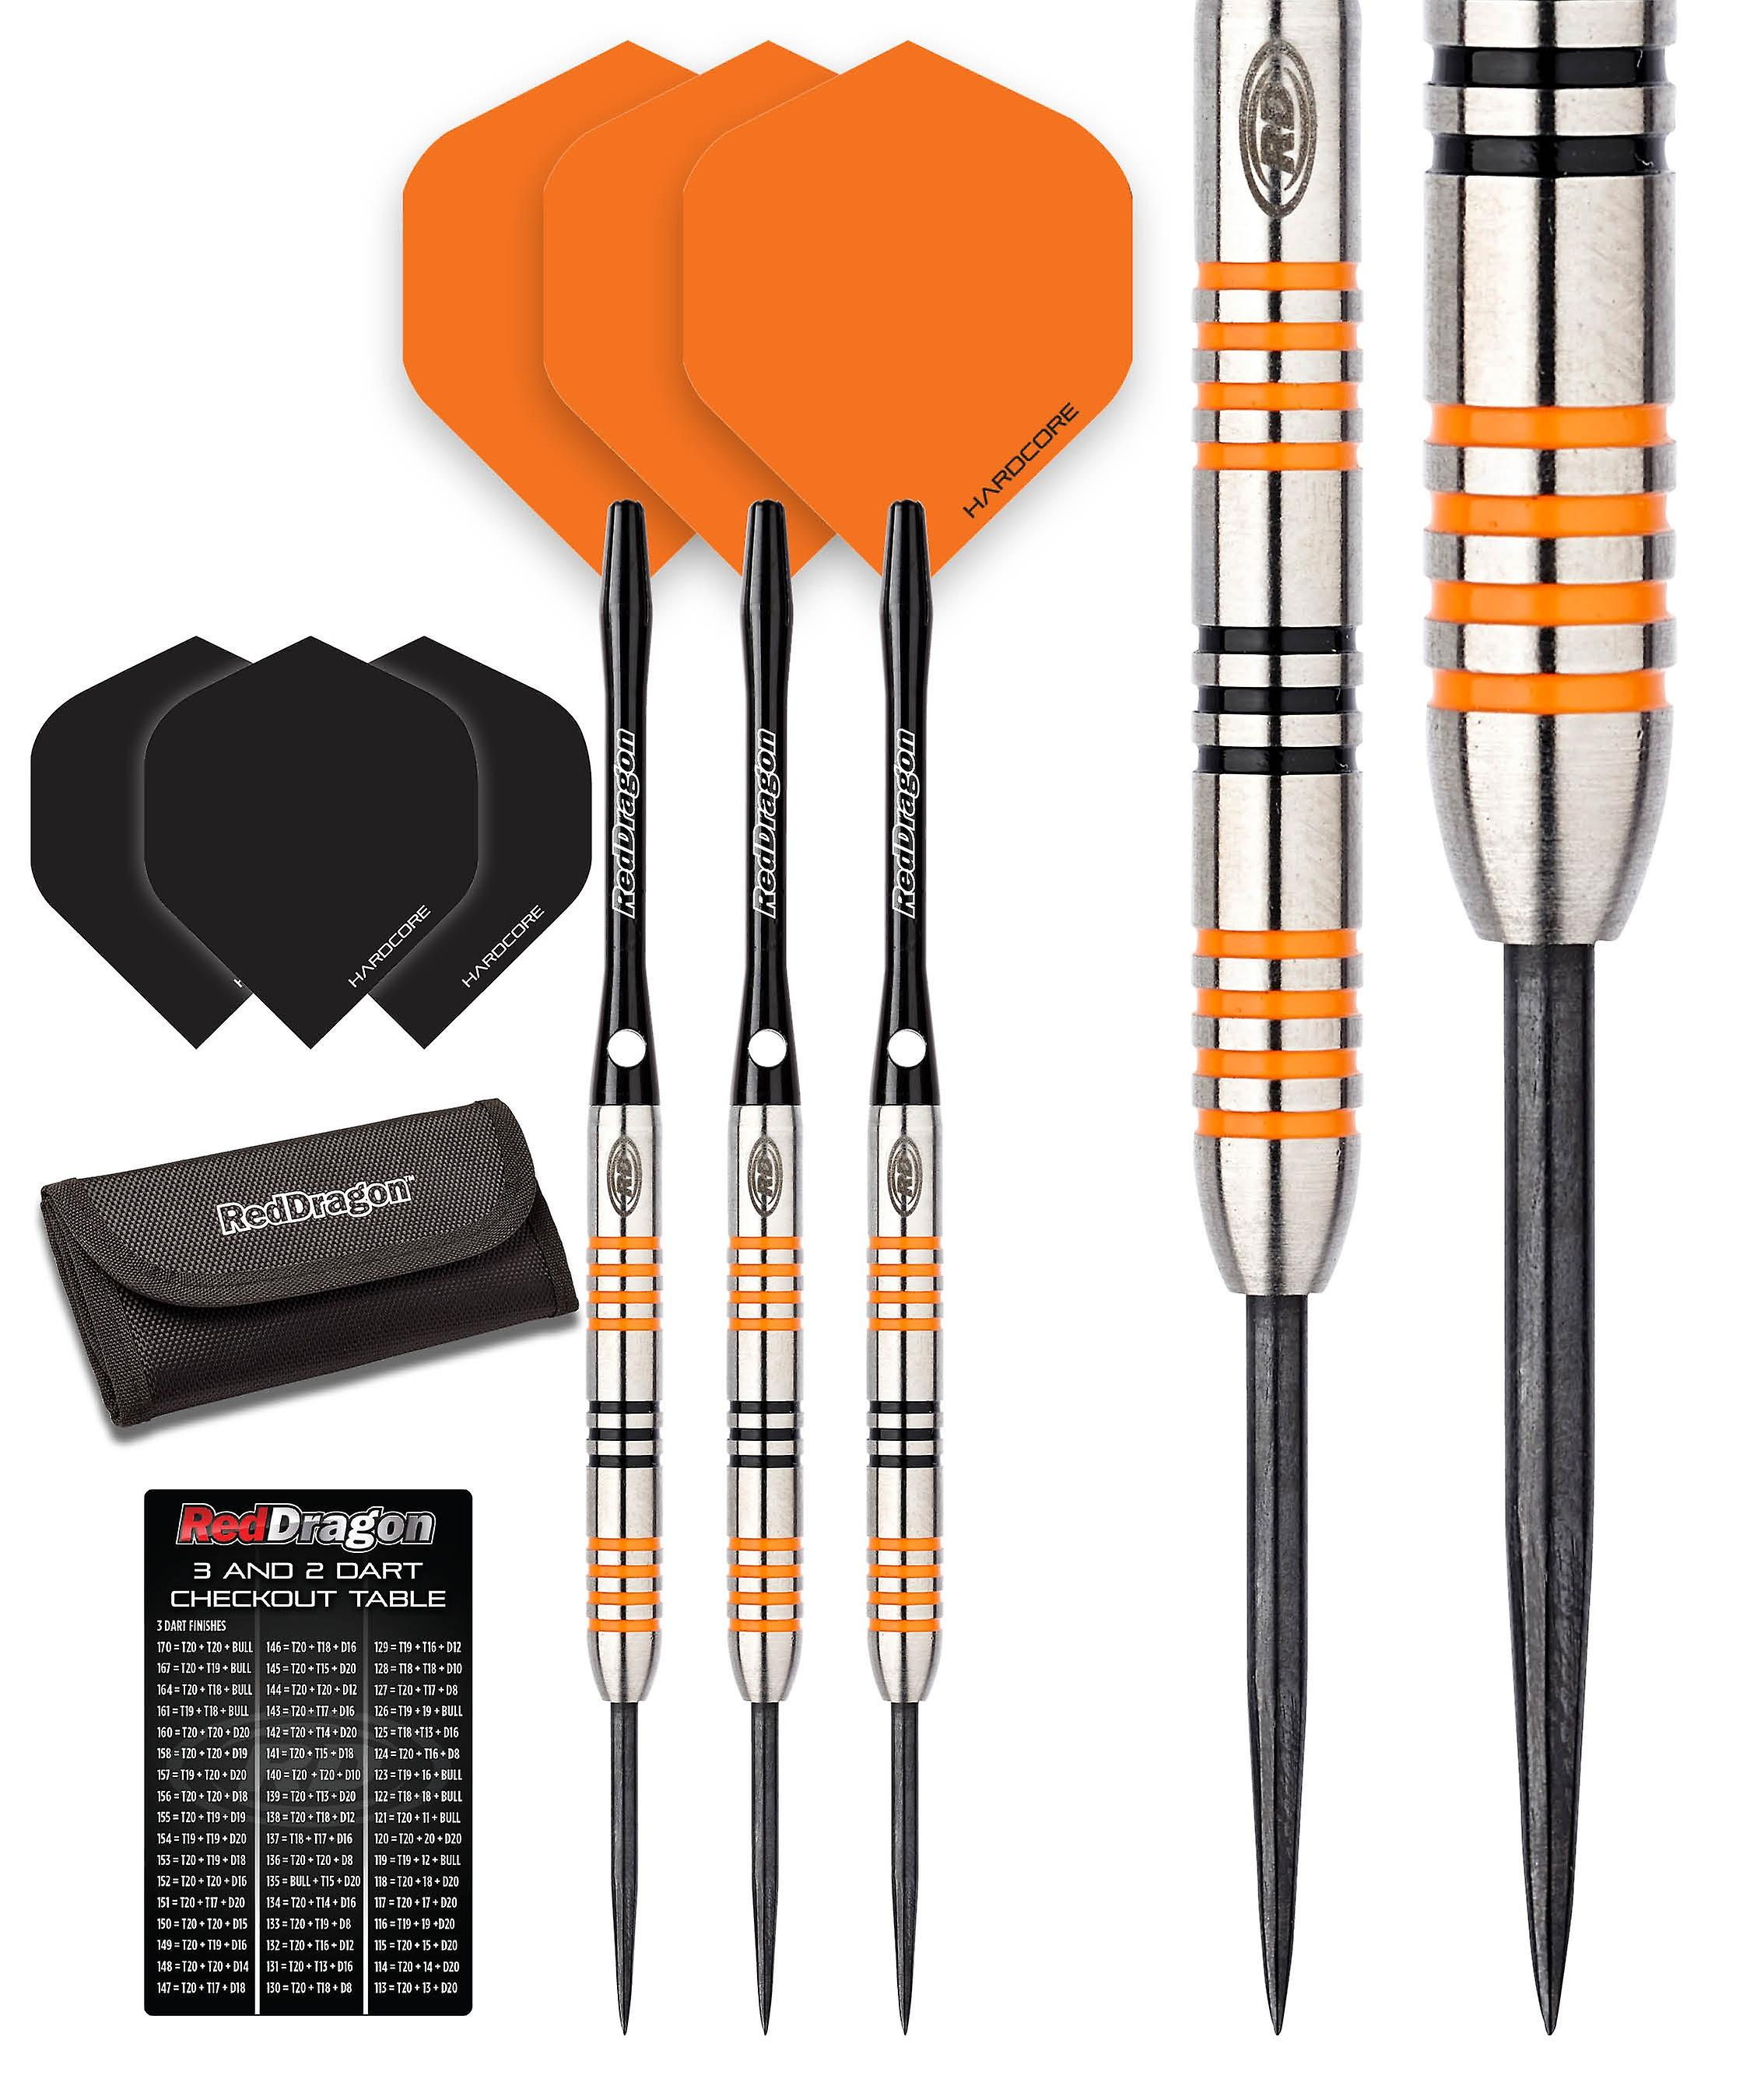 Red Dragon Amberjack 3: 22g - 90% Tungsten Steel Darts with Flights, Shafts, Wallet & Red Dragon Checkout Card